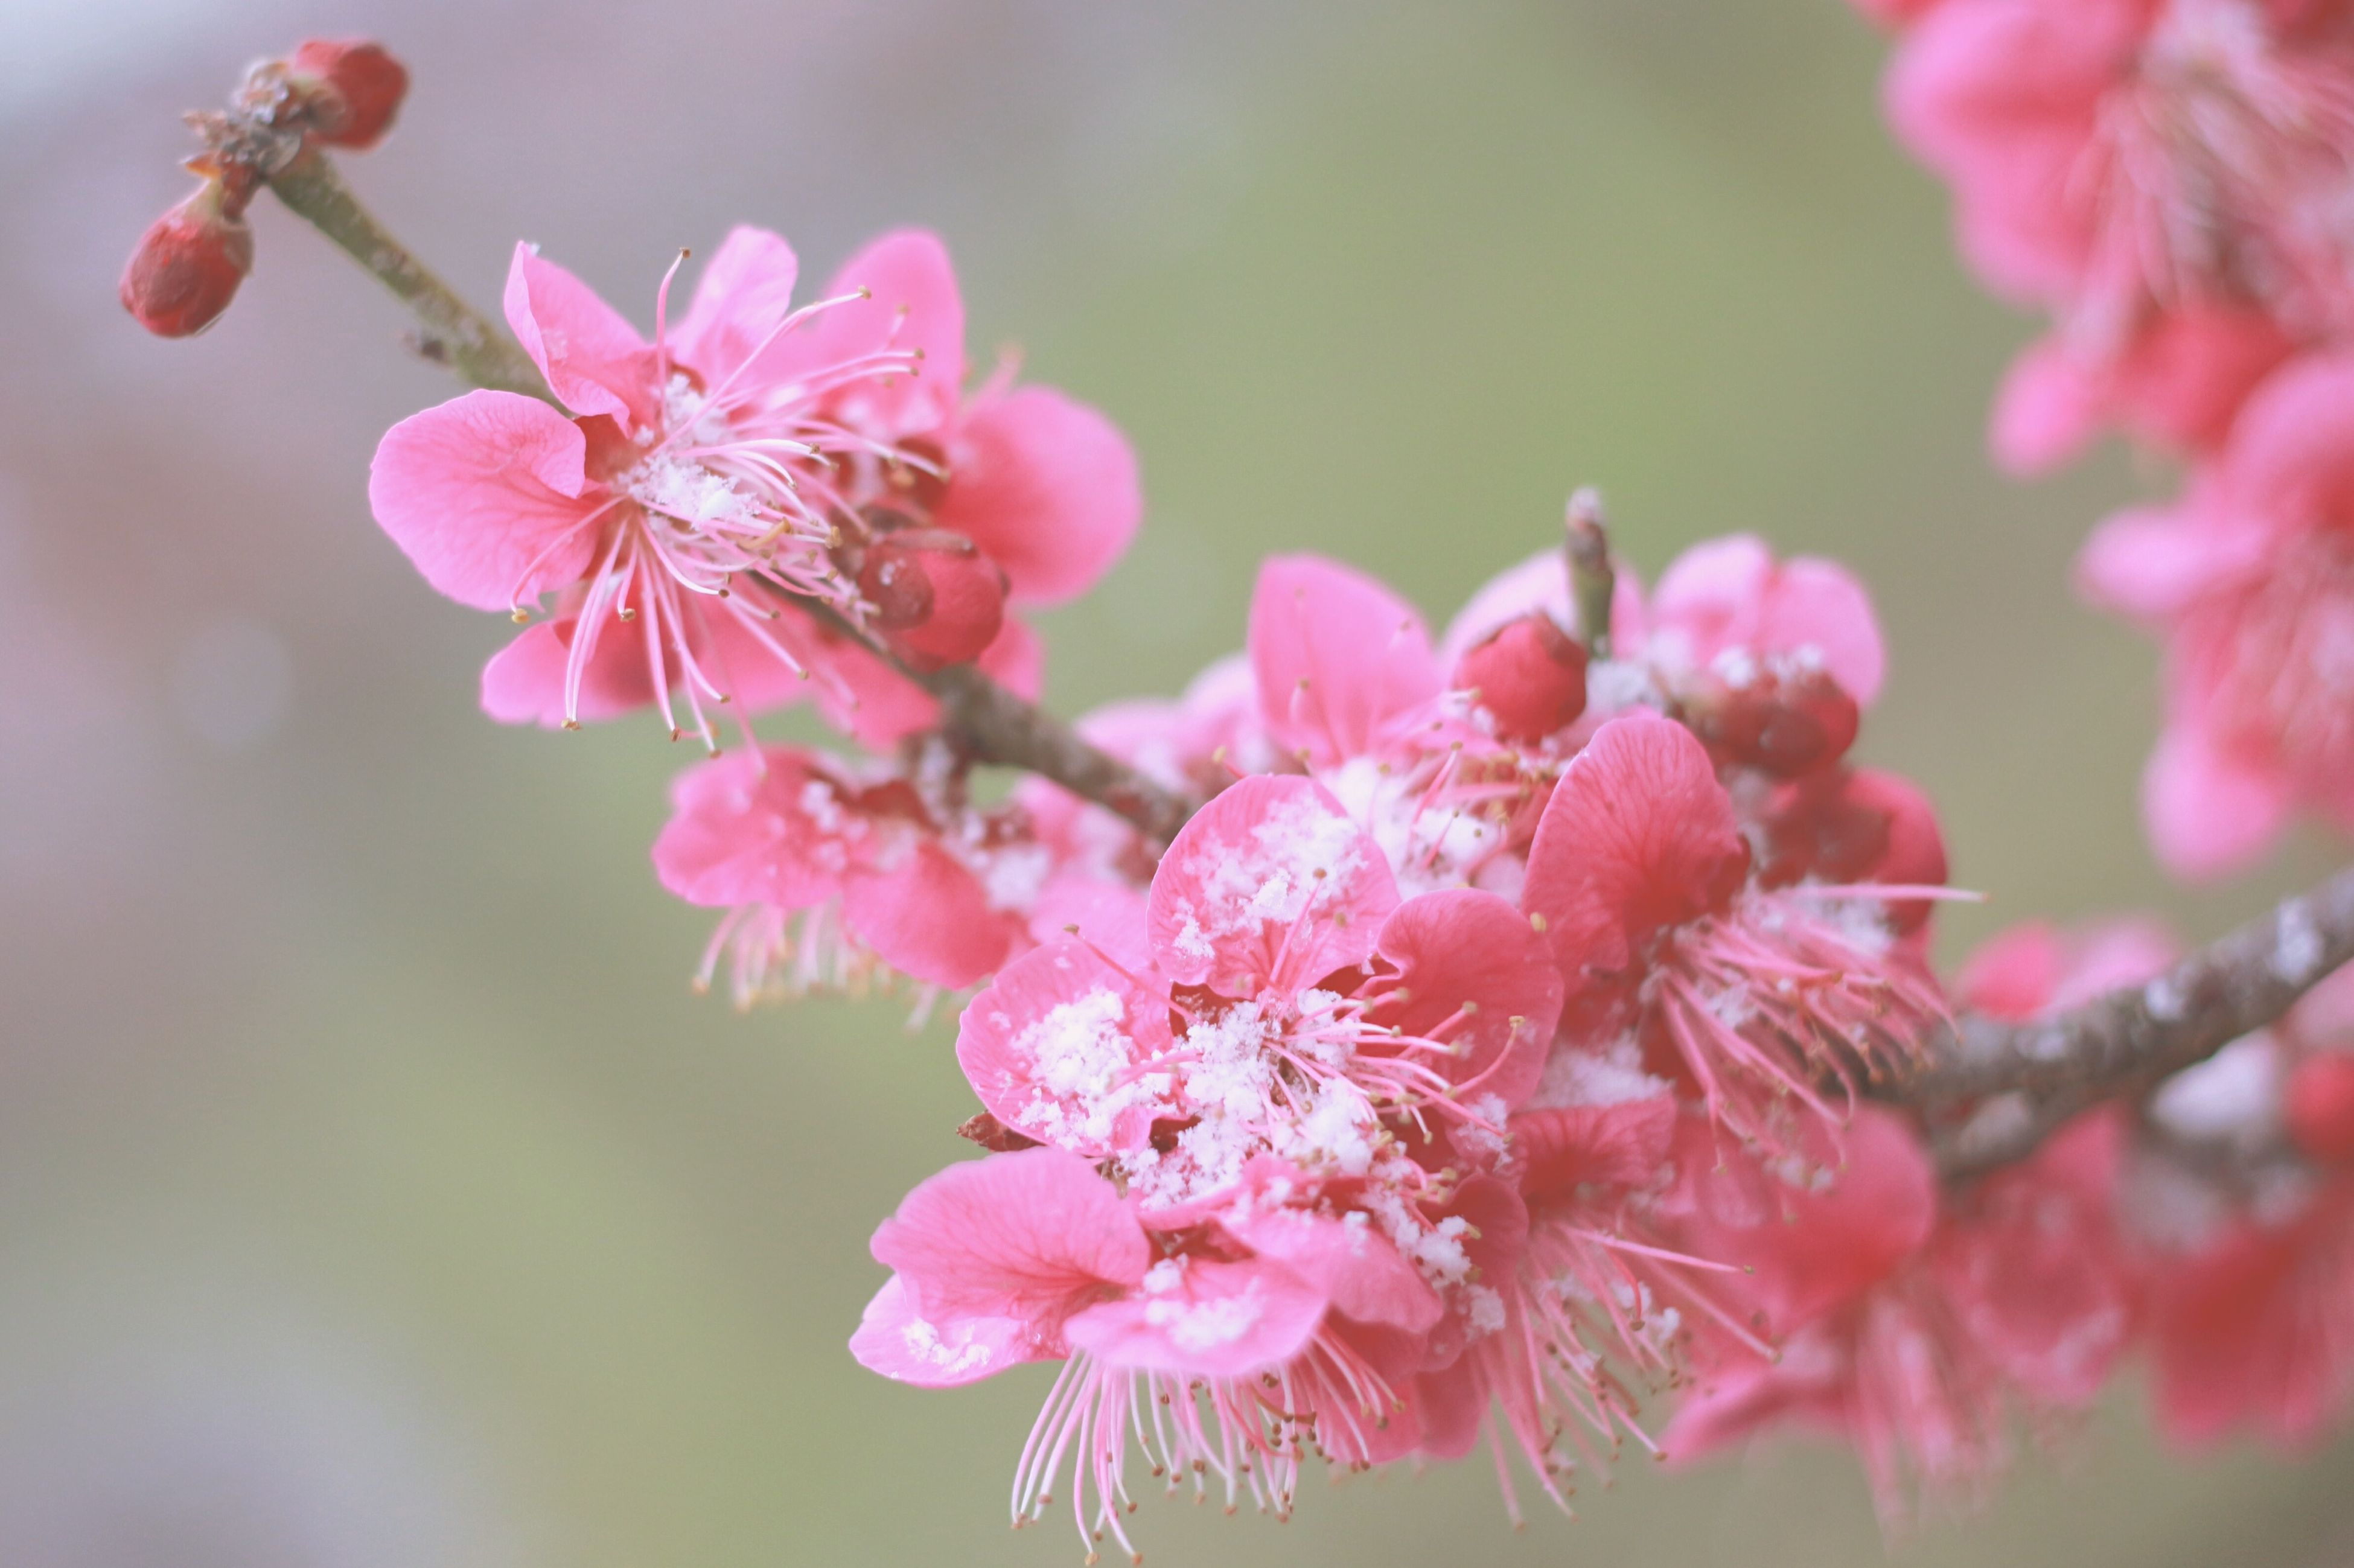 flower, freshness, pink color, fragility, growth, petal, beauty in nature, focus on foreground, close-up, nature, branch, flower head, blooming, pink, blossom, in bloom, bud, twig, plant, selective focus